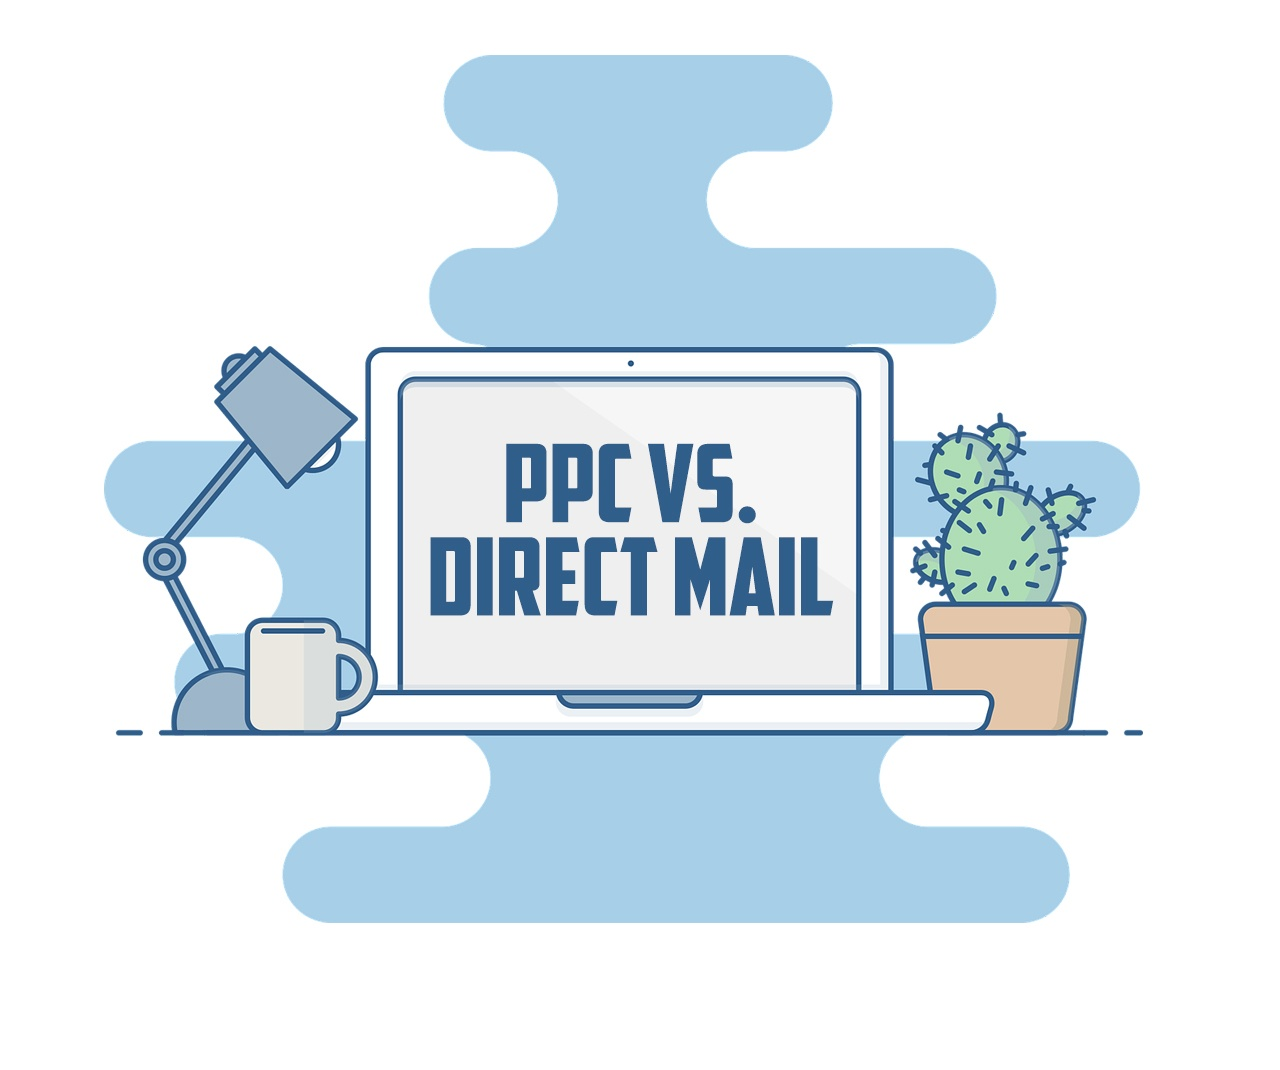 PPC vs. Direct Mail: Comparing the Cost, Quality and Value